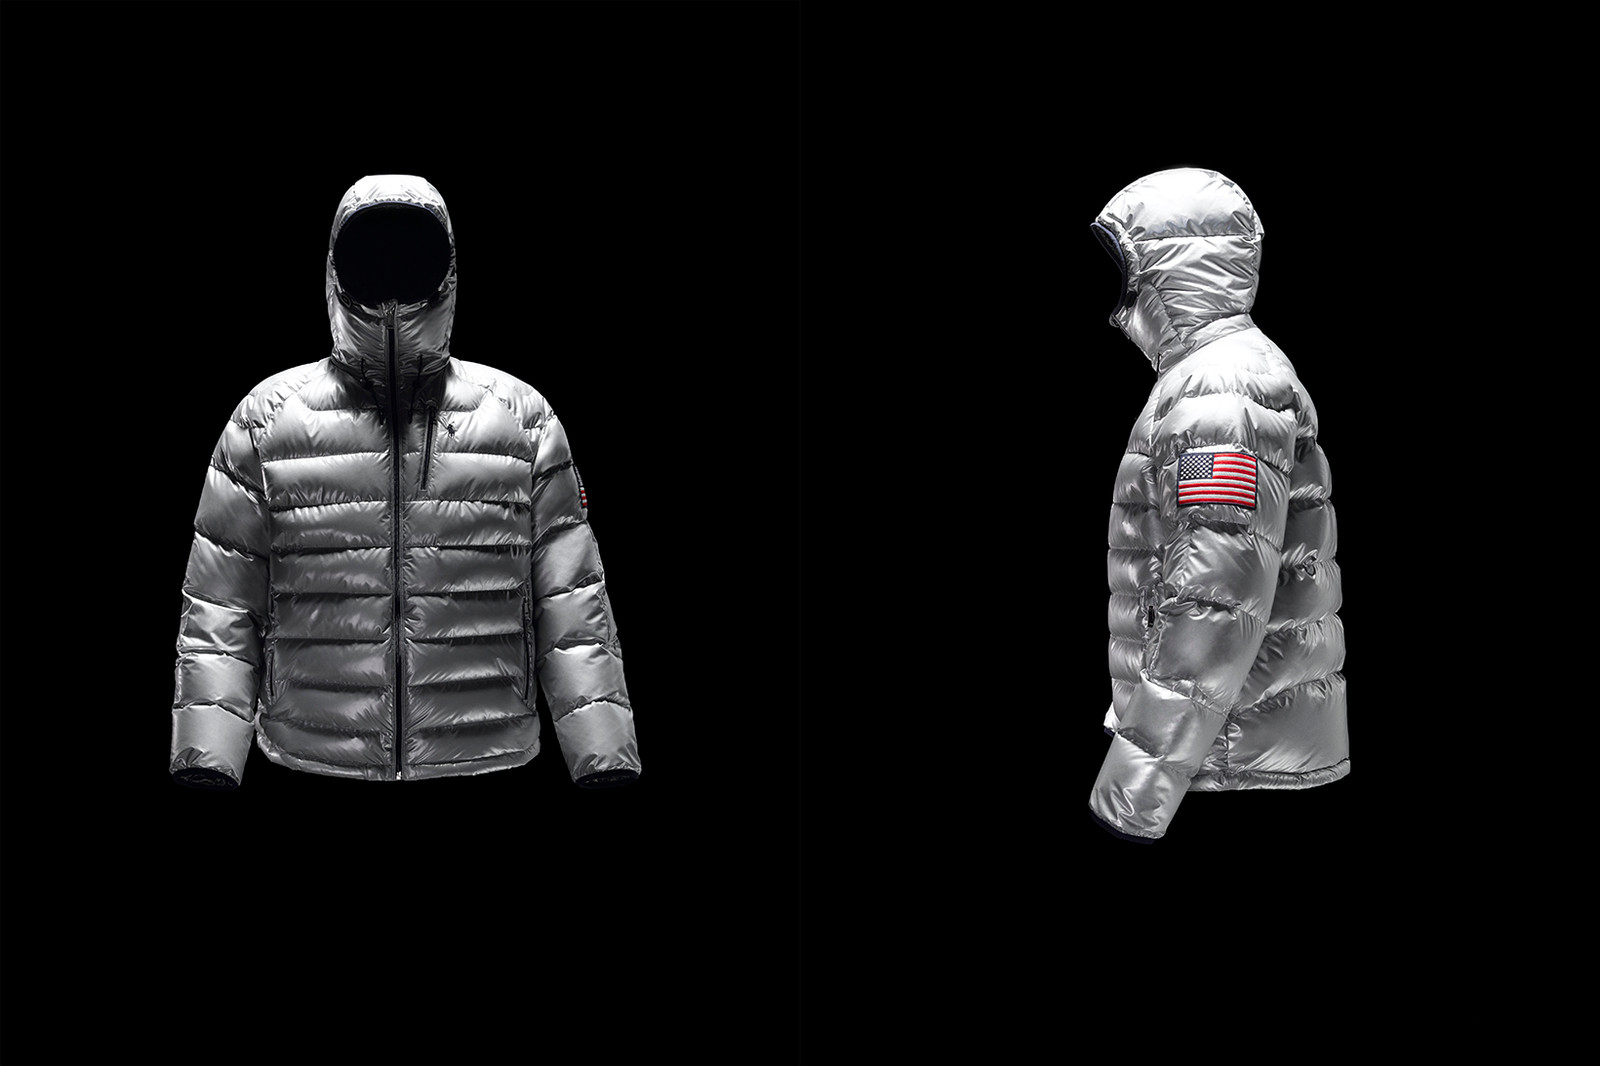 Ralph Lauren Polo 11 High Tech Heated Jacket App Glacier Down White Navy Silver Thermal Battery